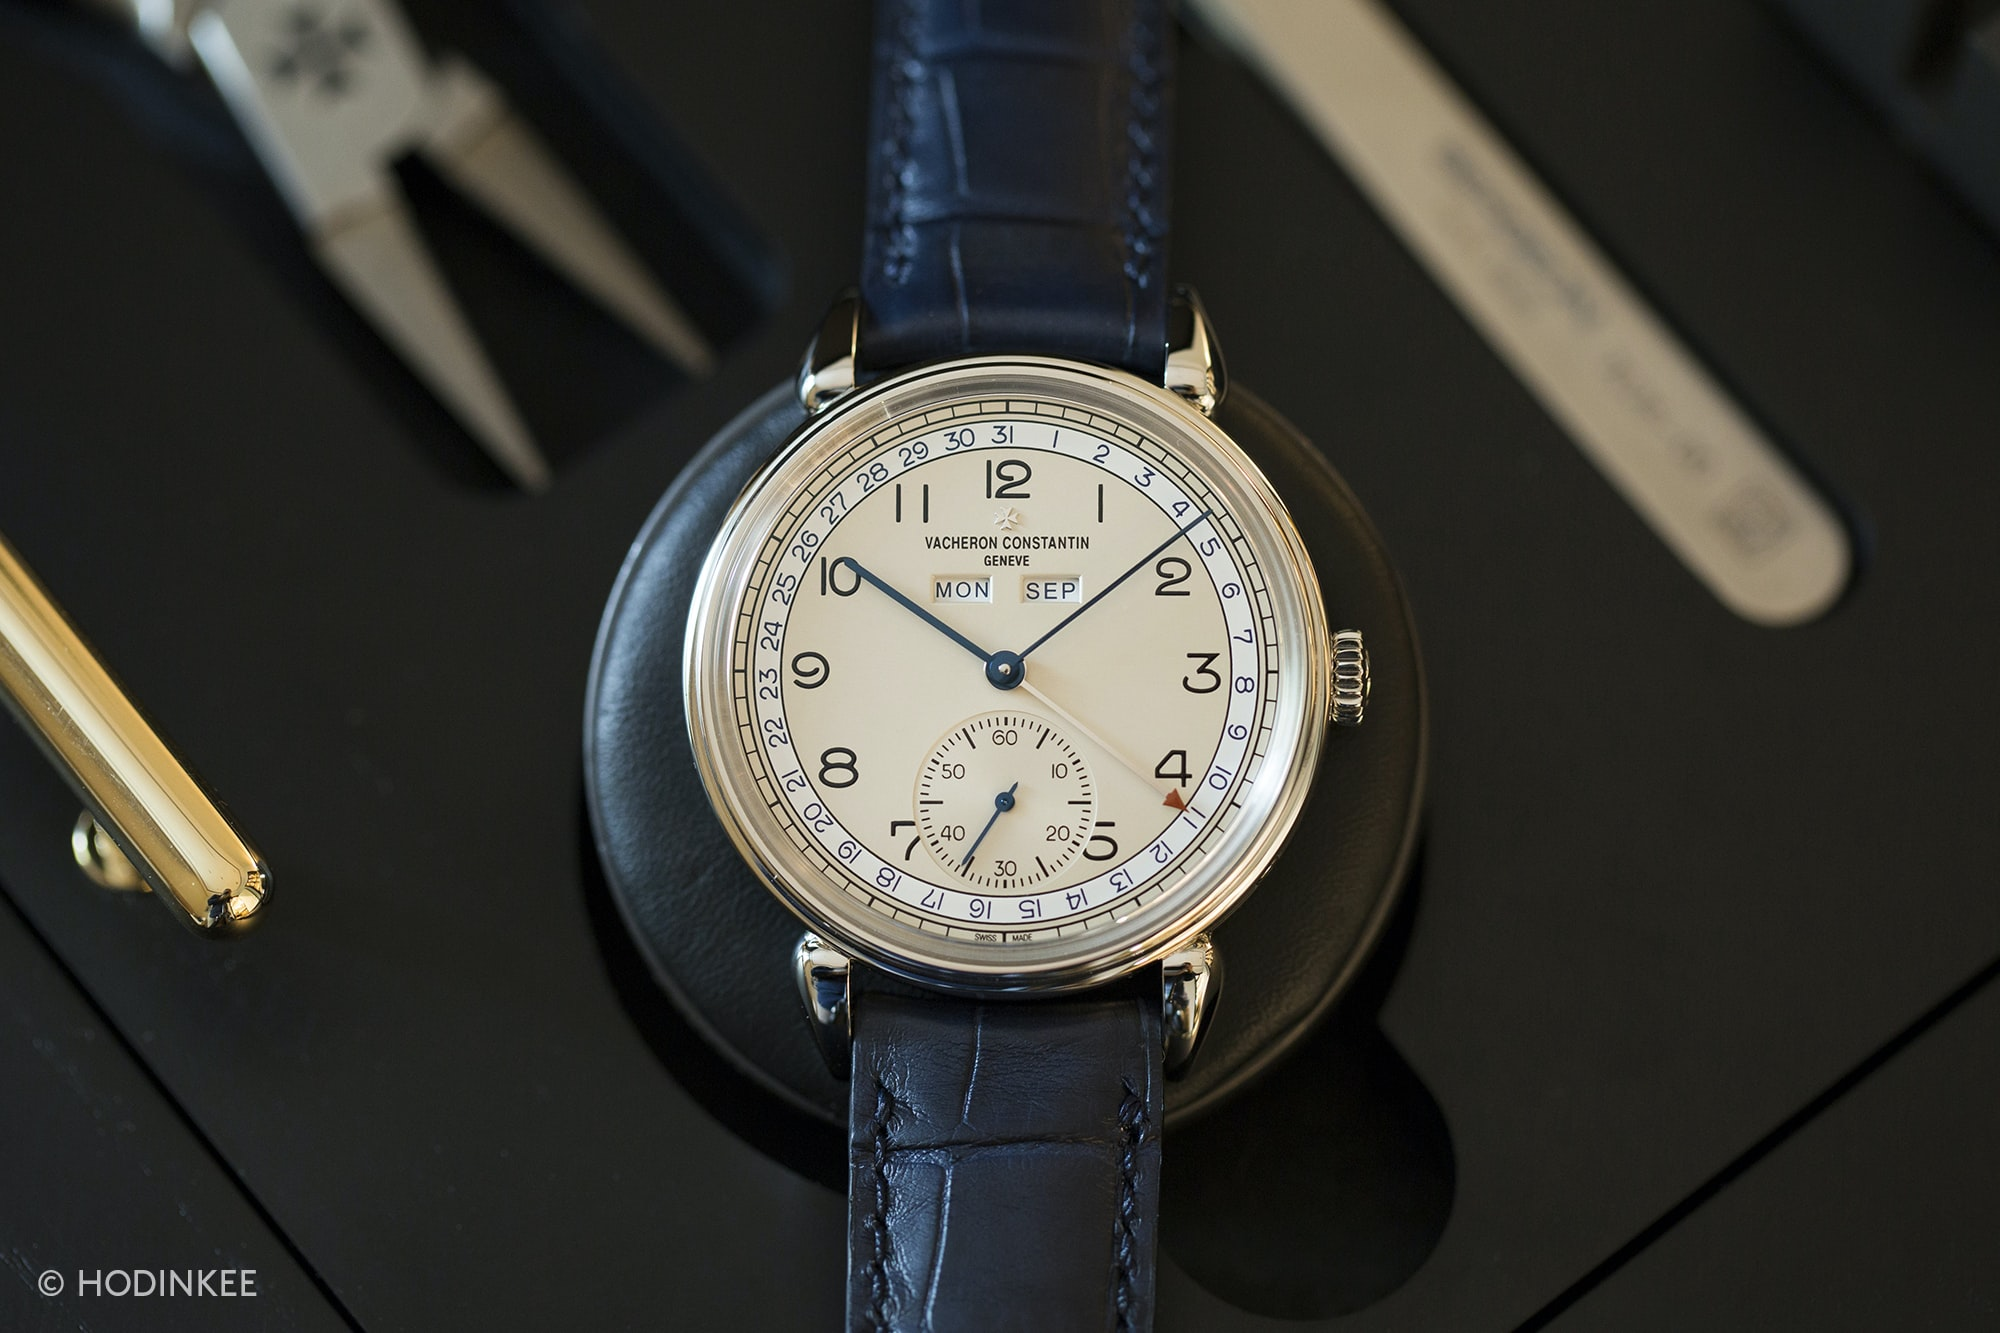 vacheron historiques triple calendrier 1942 Introducing: The New Vacheron Constantin Historiques: Triple Calendrier 1942 And 1948, And American 1921 Small (Exclusive Live Pics) Introducing: The New Vacheron Constantin Historiques: Triple Calendrier 1942 And 1948, And American 1921 Small (Exclusive Live Pics) 3H0A2897 copy